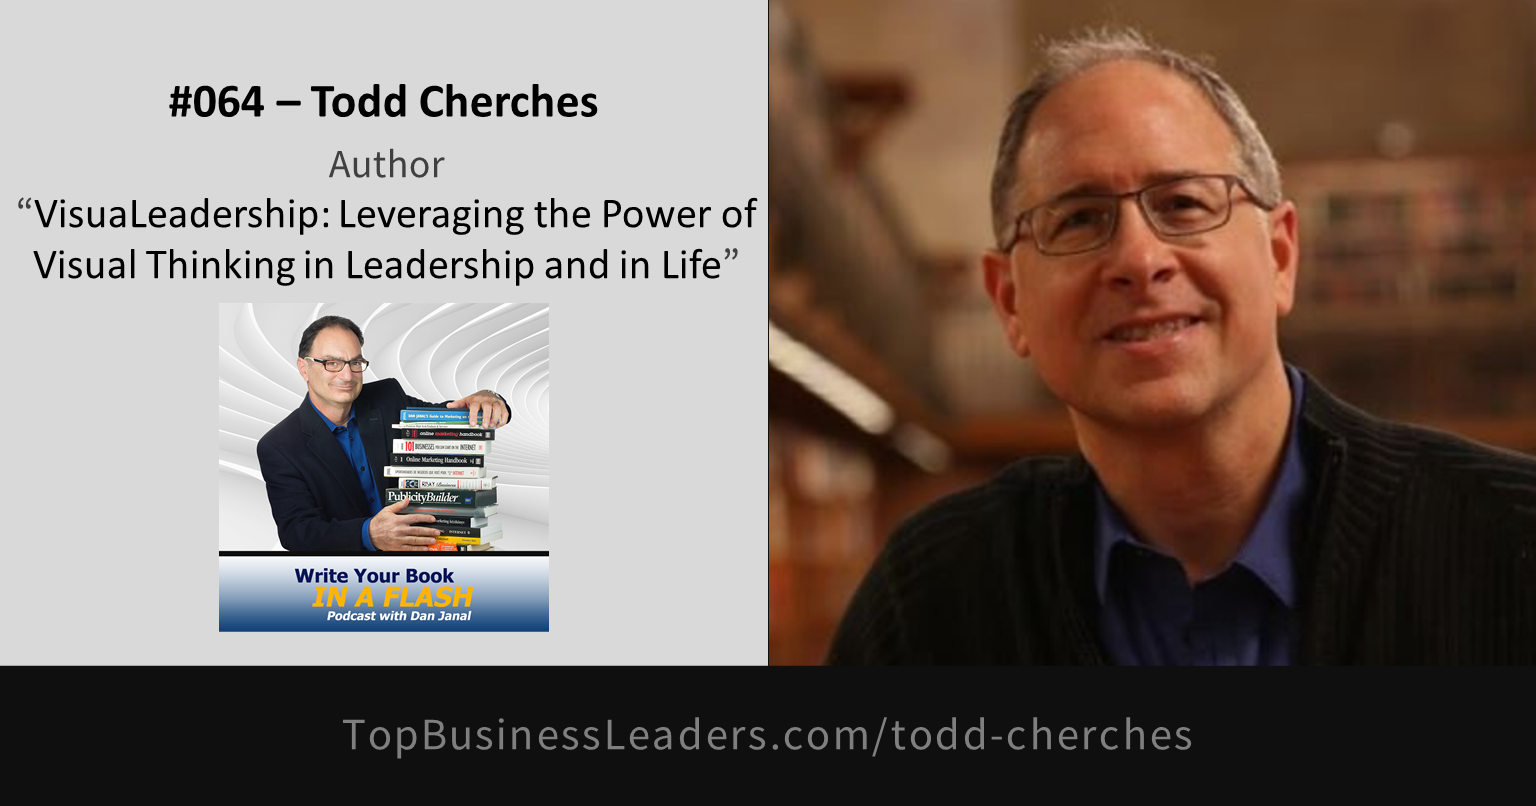 todd-cherches-author-visualeadership-leveraging-the-power-of-visual-thinking-in-leadership-and-in-life